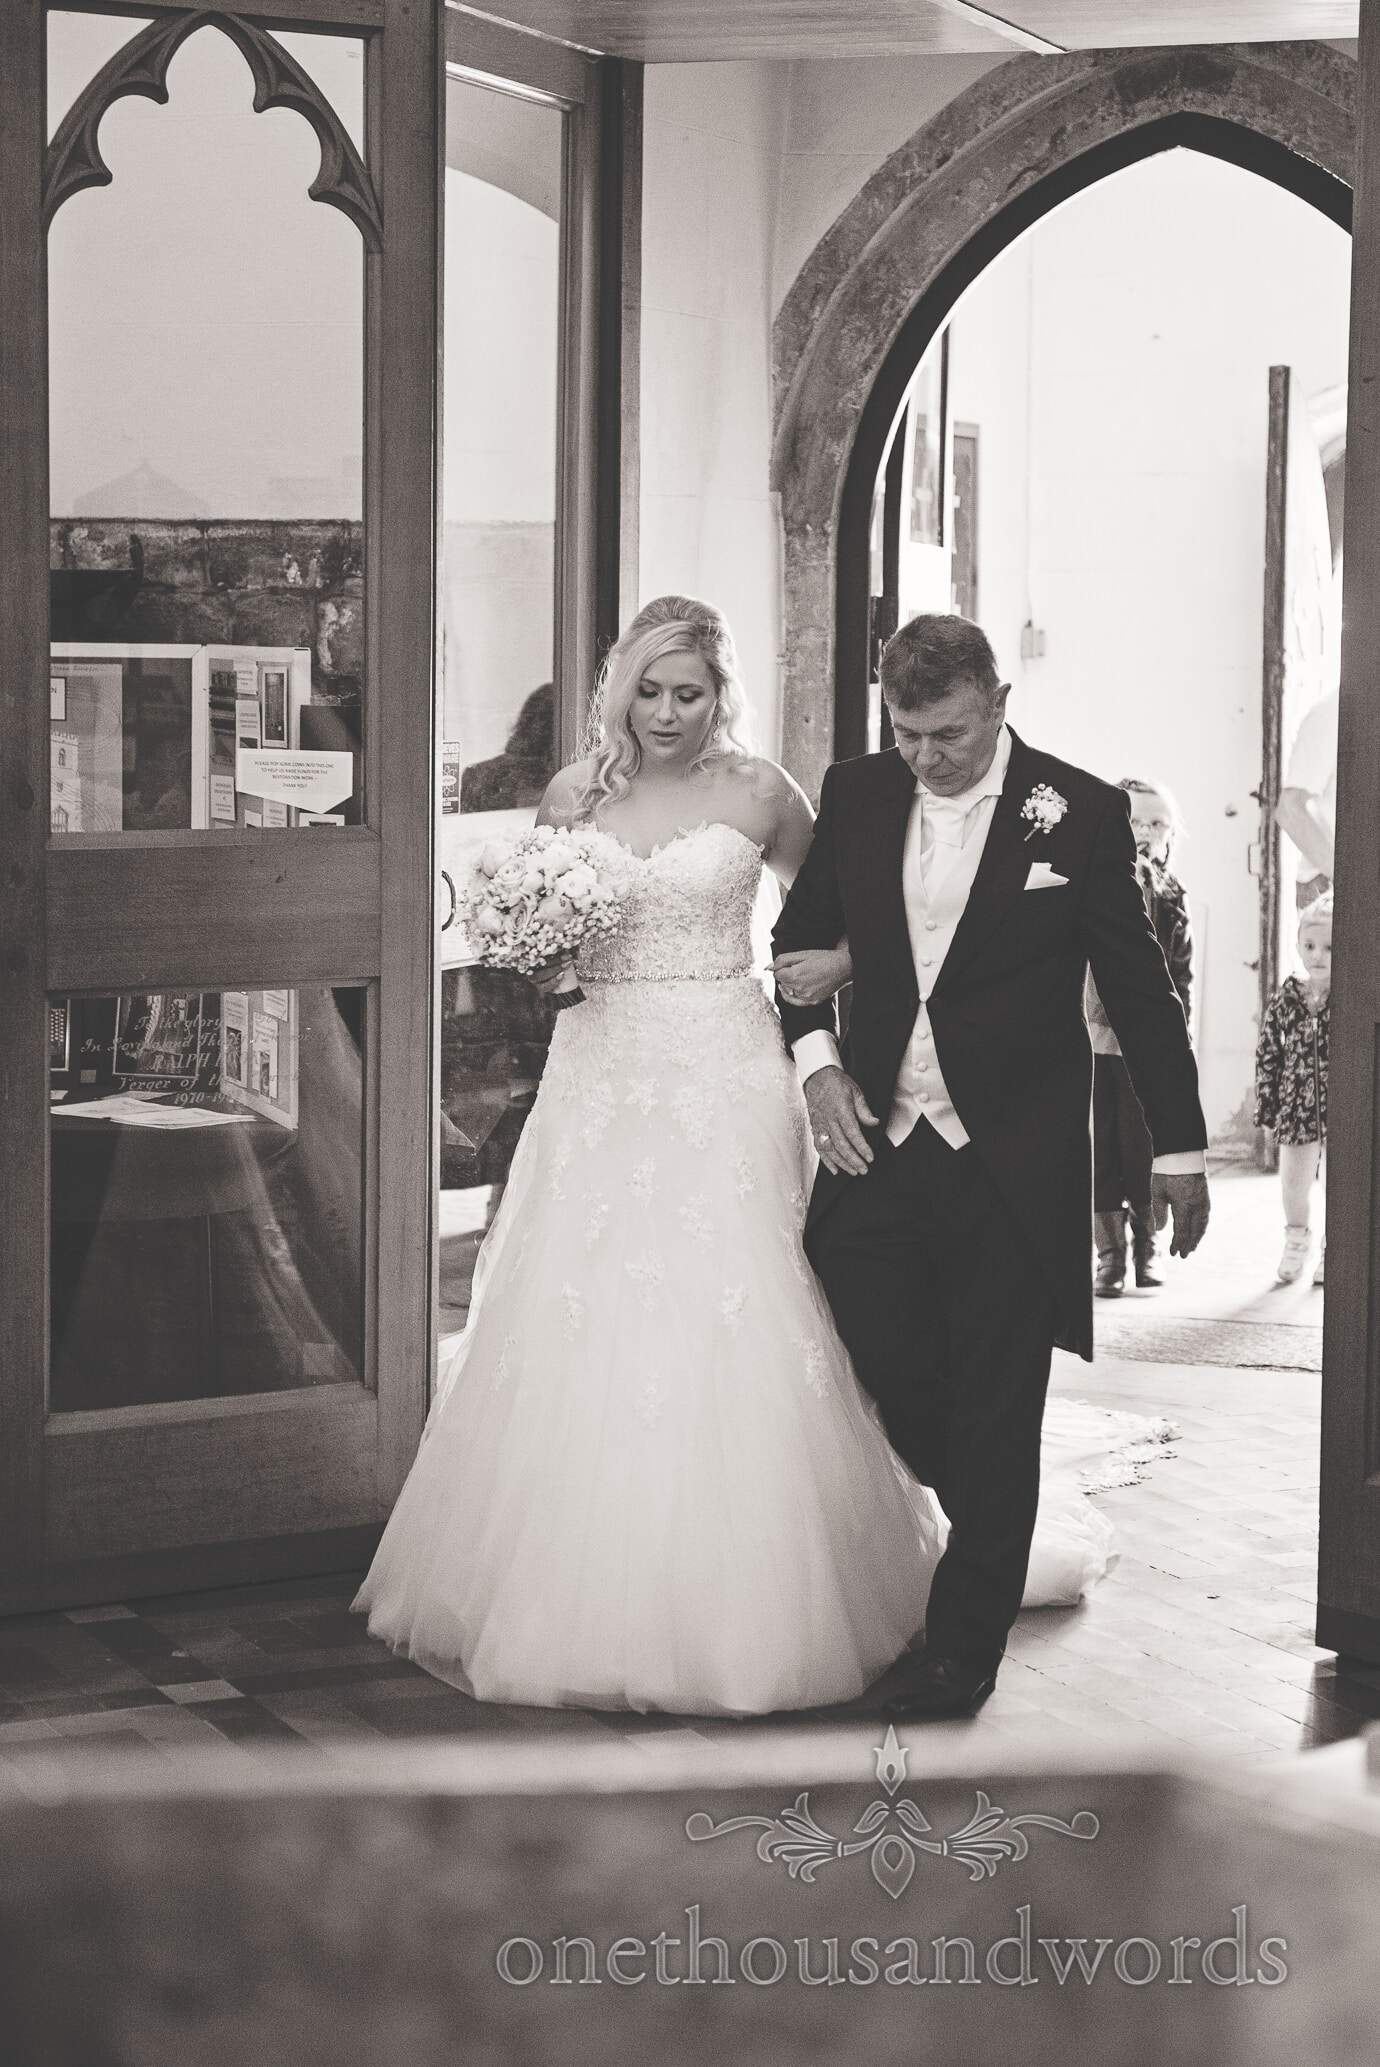 Black and white wedding photography of bride and father entering church wedding service